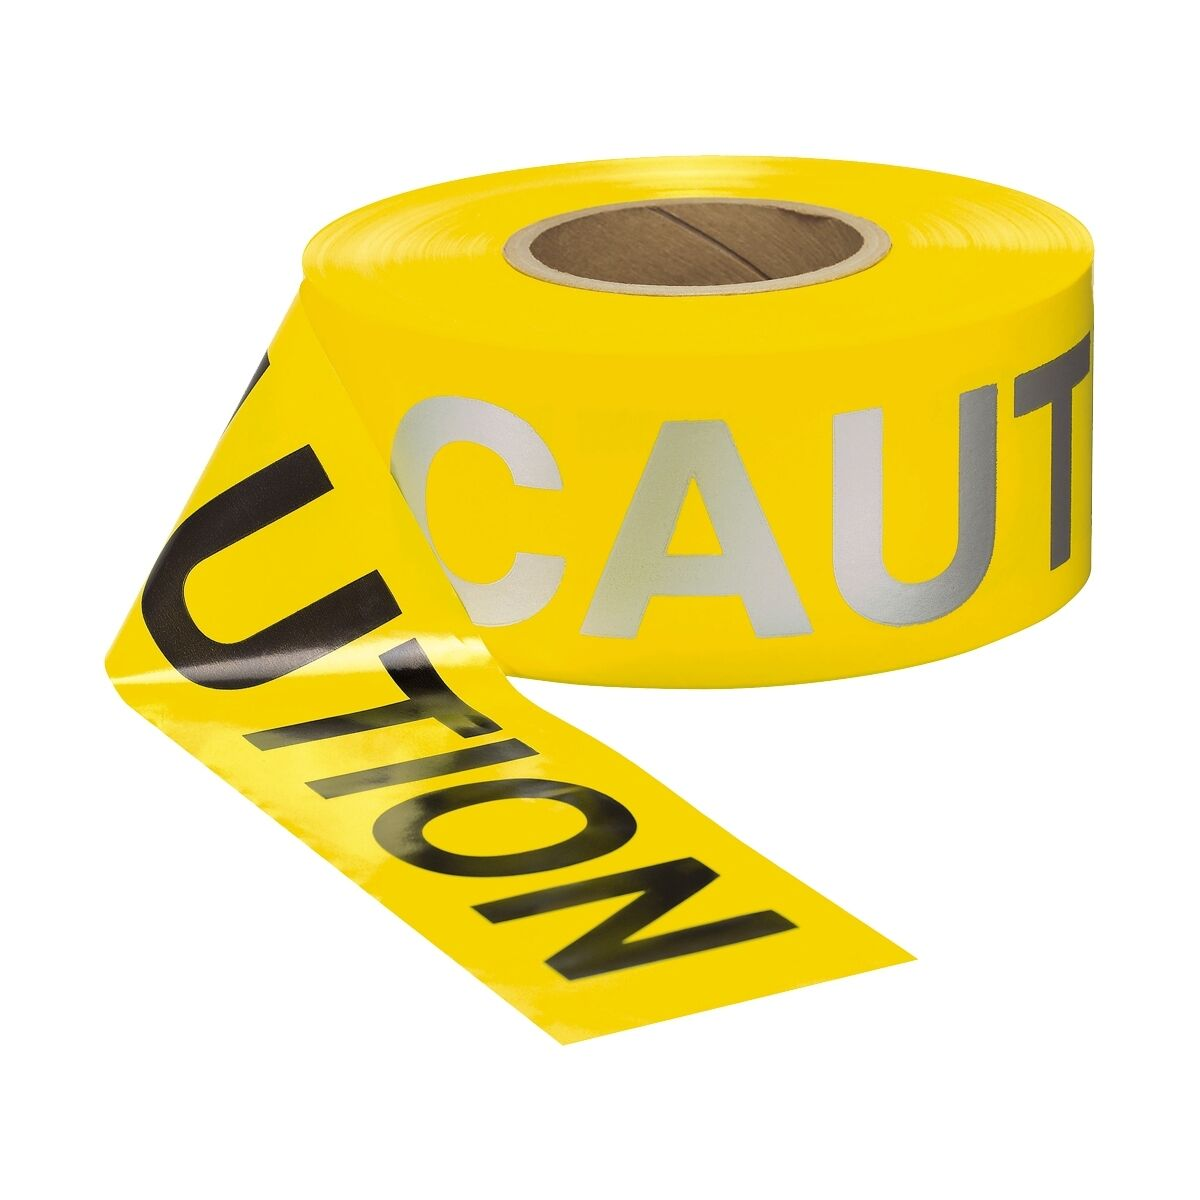 Yellow Reflective CAUTION Tape, 1000 Foot Roll, 2.5 Mil